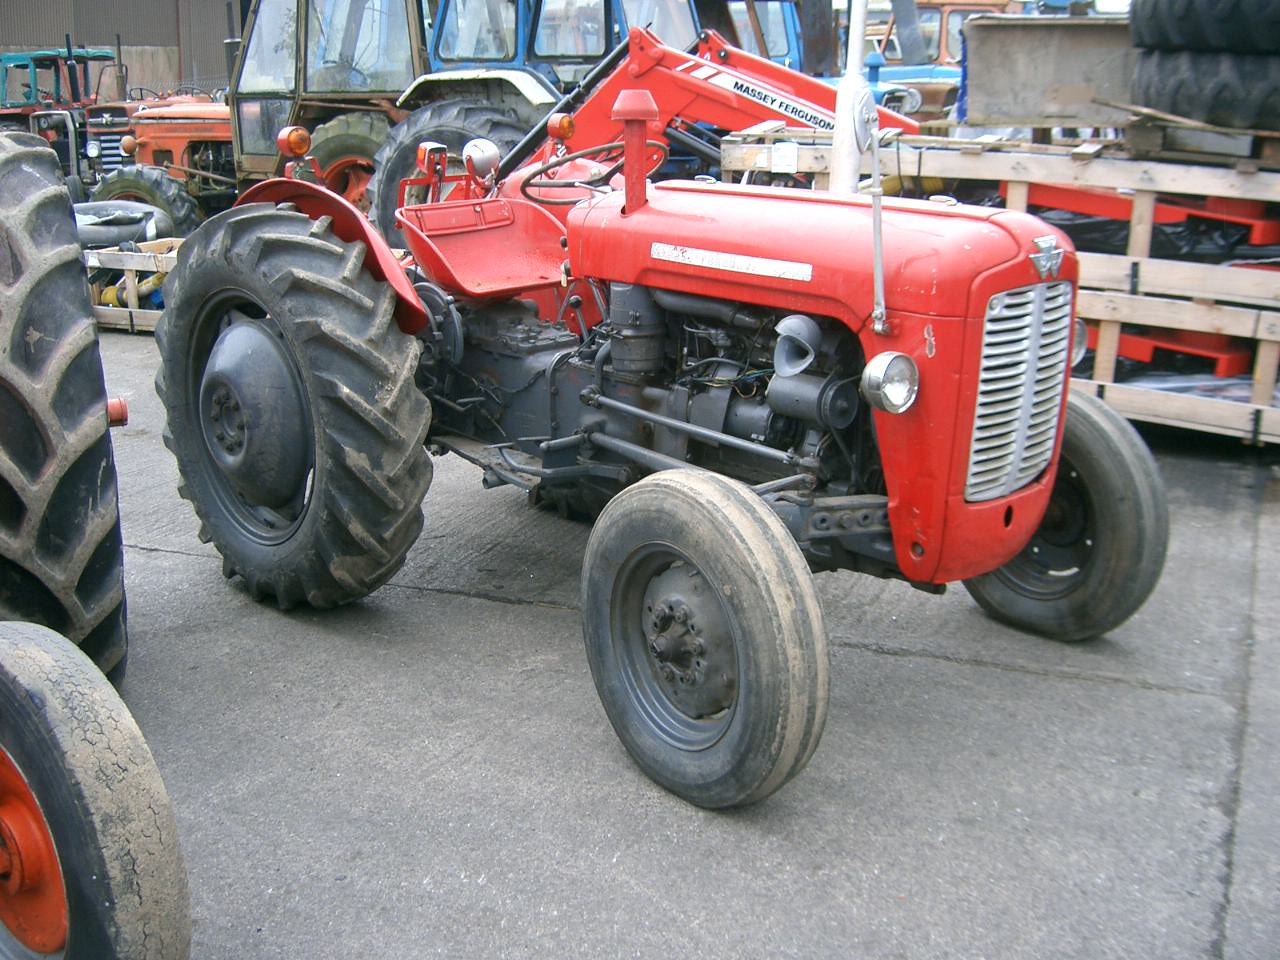 Massey ferguson 35x photo - 5